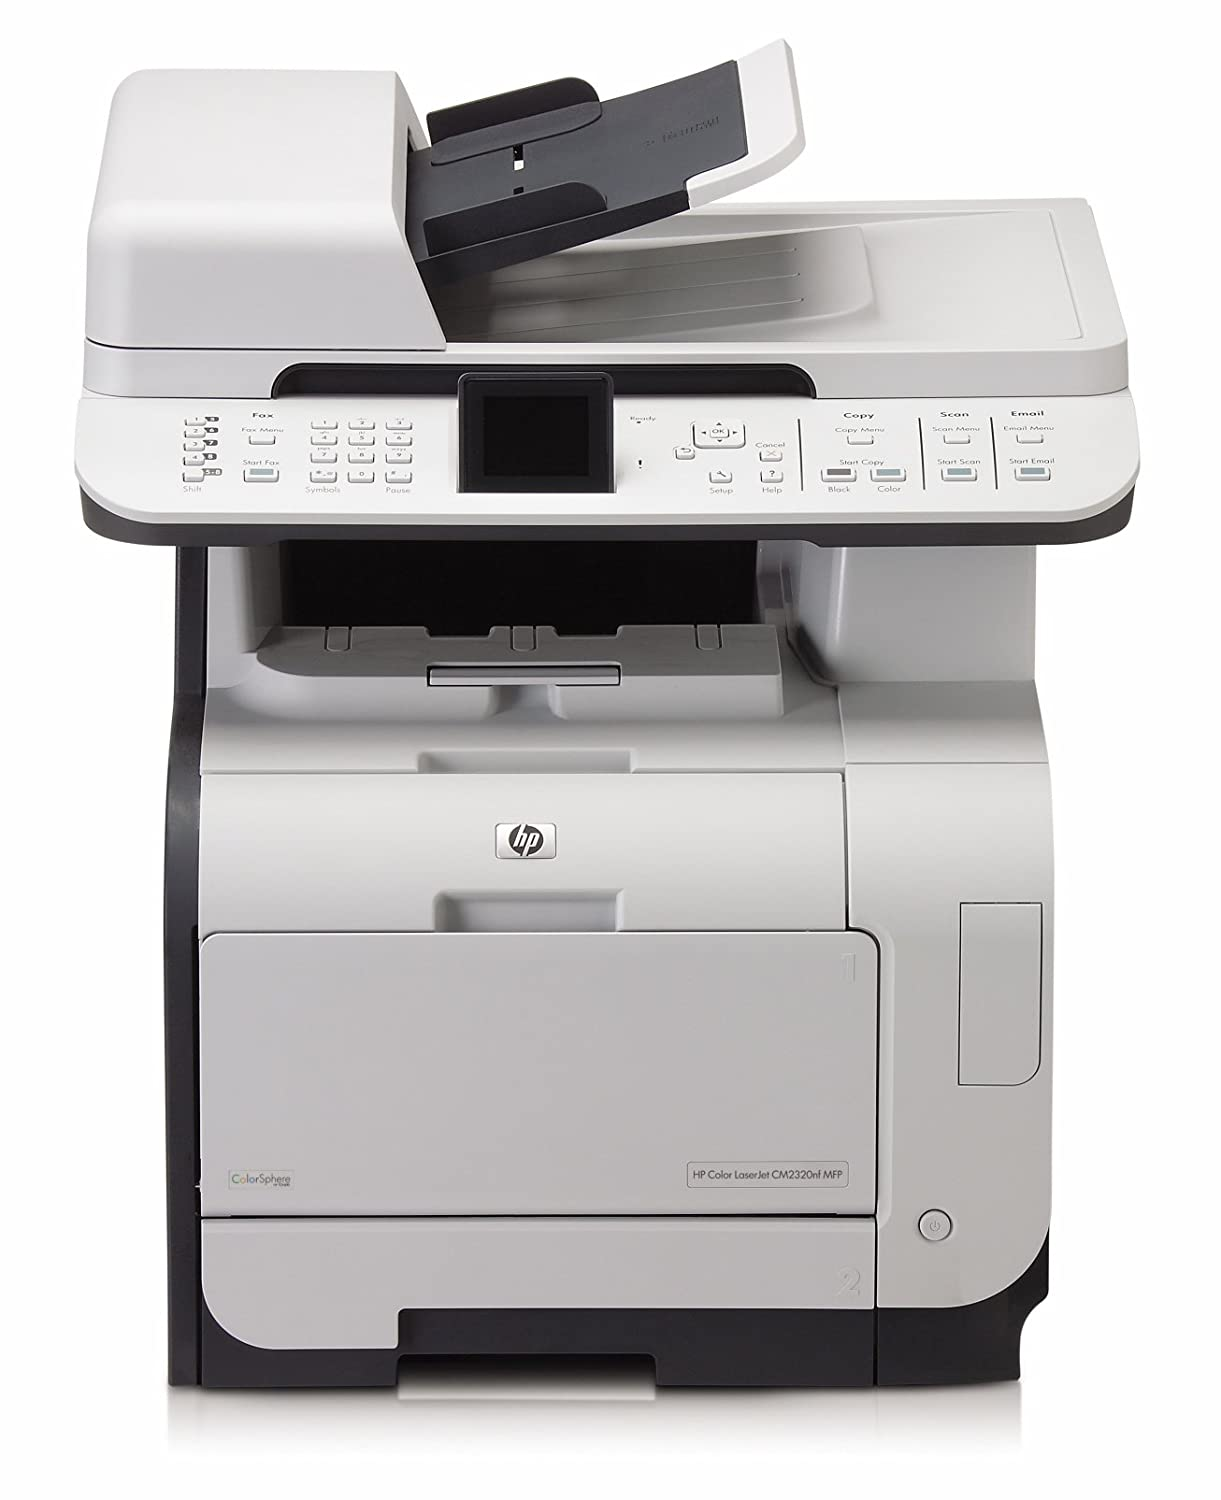 HP Color LaserJet CM2320nf Multifunction Colour Laser Printer (All-in-One  Printer, Copier, Scanner and Fax): Amazon.co.uk: Computers & Accessories